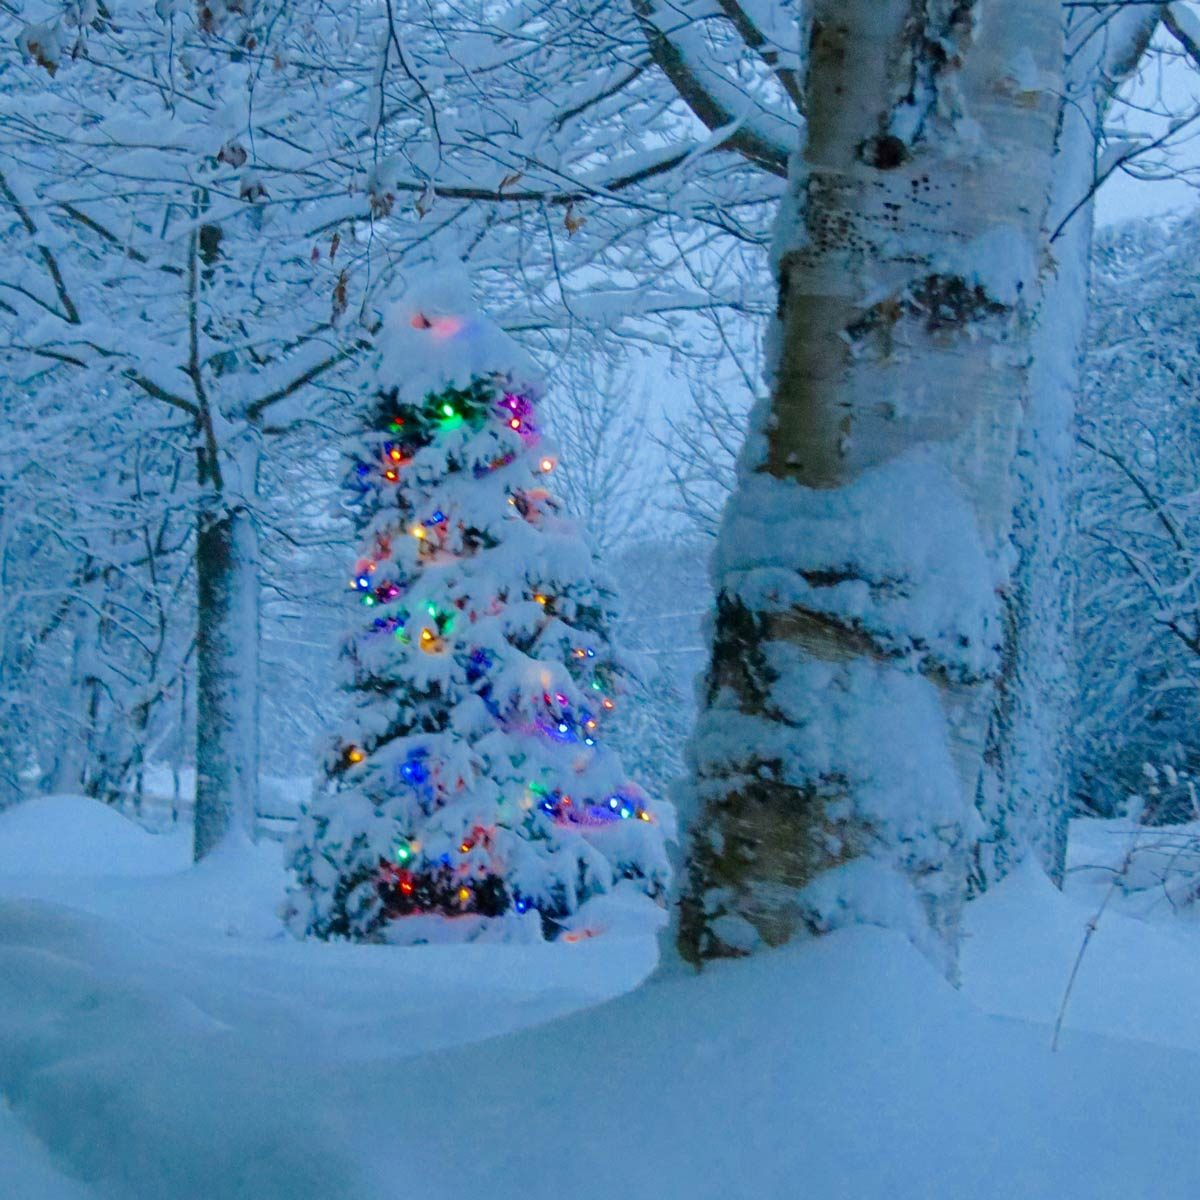 snow covered pine tree with christmas lights